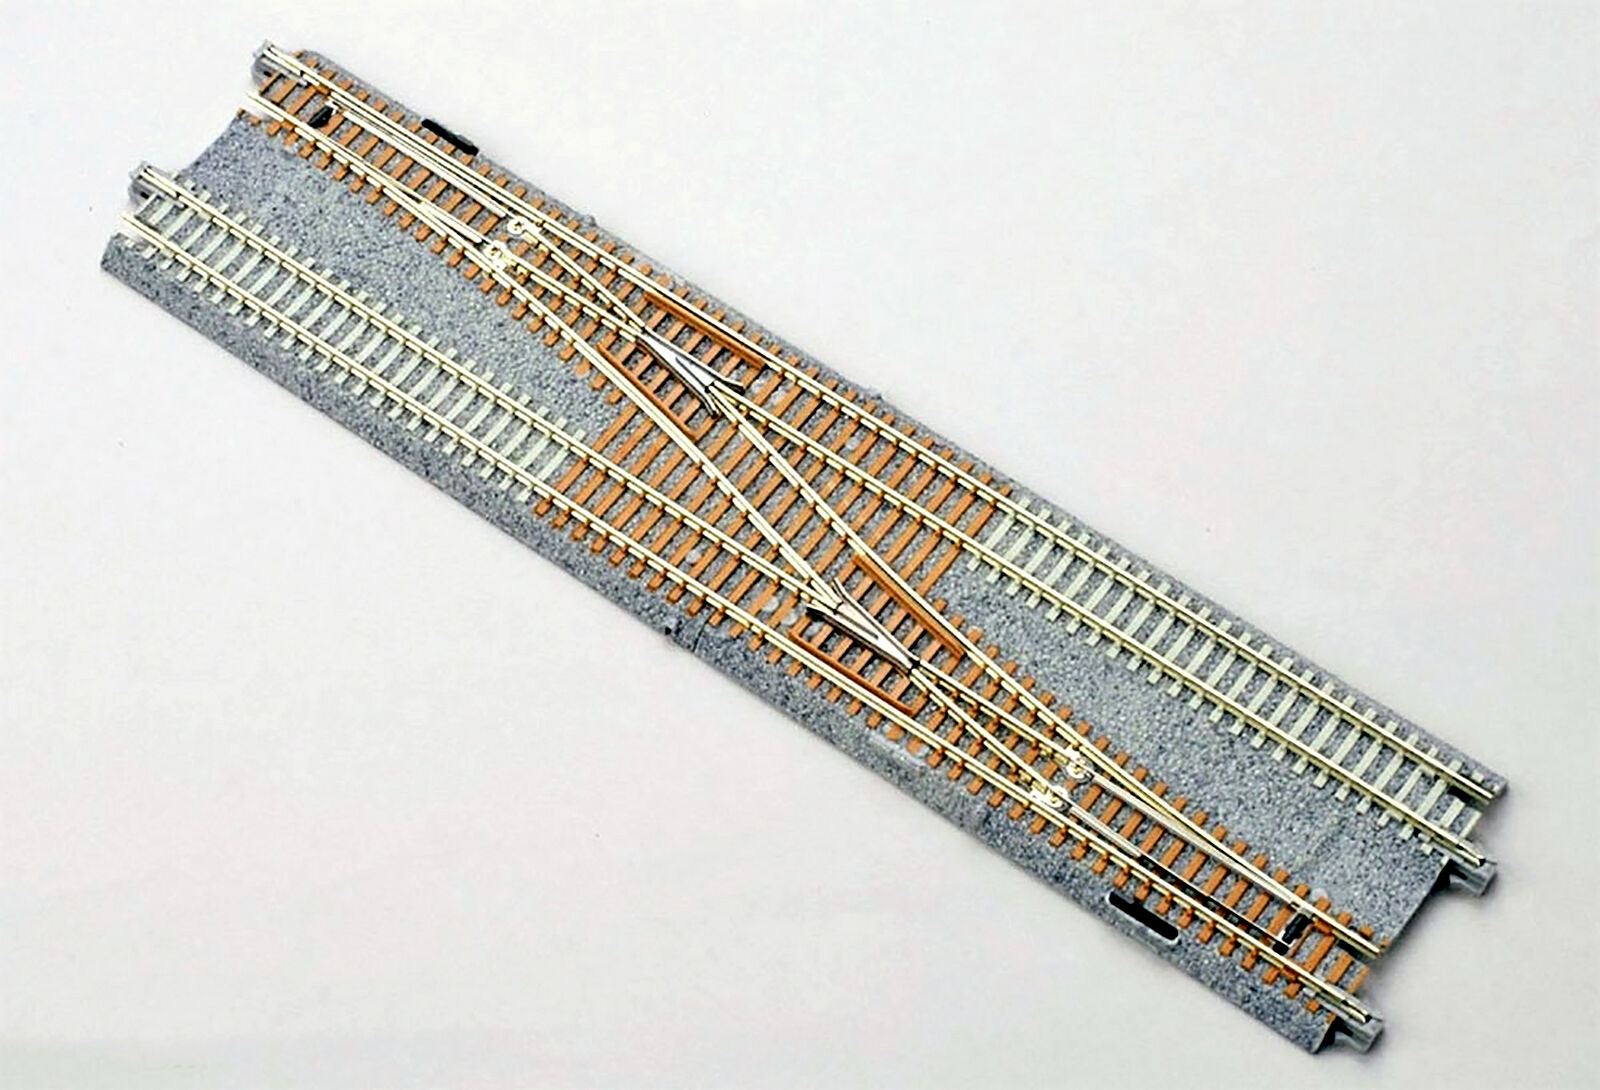 Power Wiring For Kato 20231 Crossovers Electrical Diagram Track N Gauge Unitrack Double 4 Single Crossover Turnout